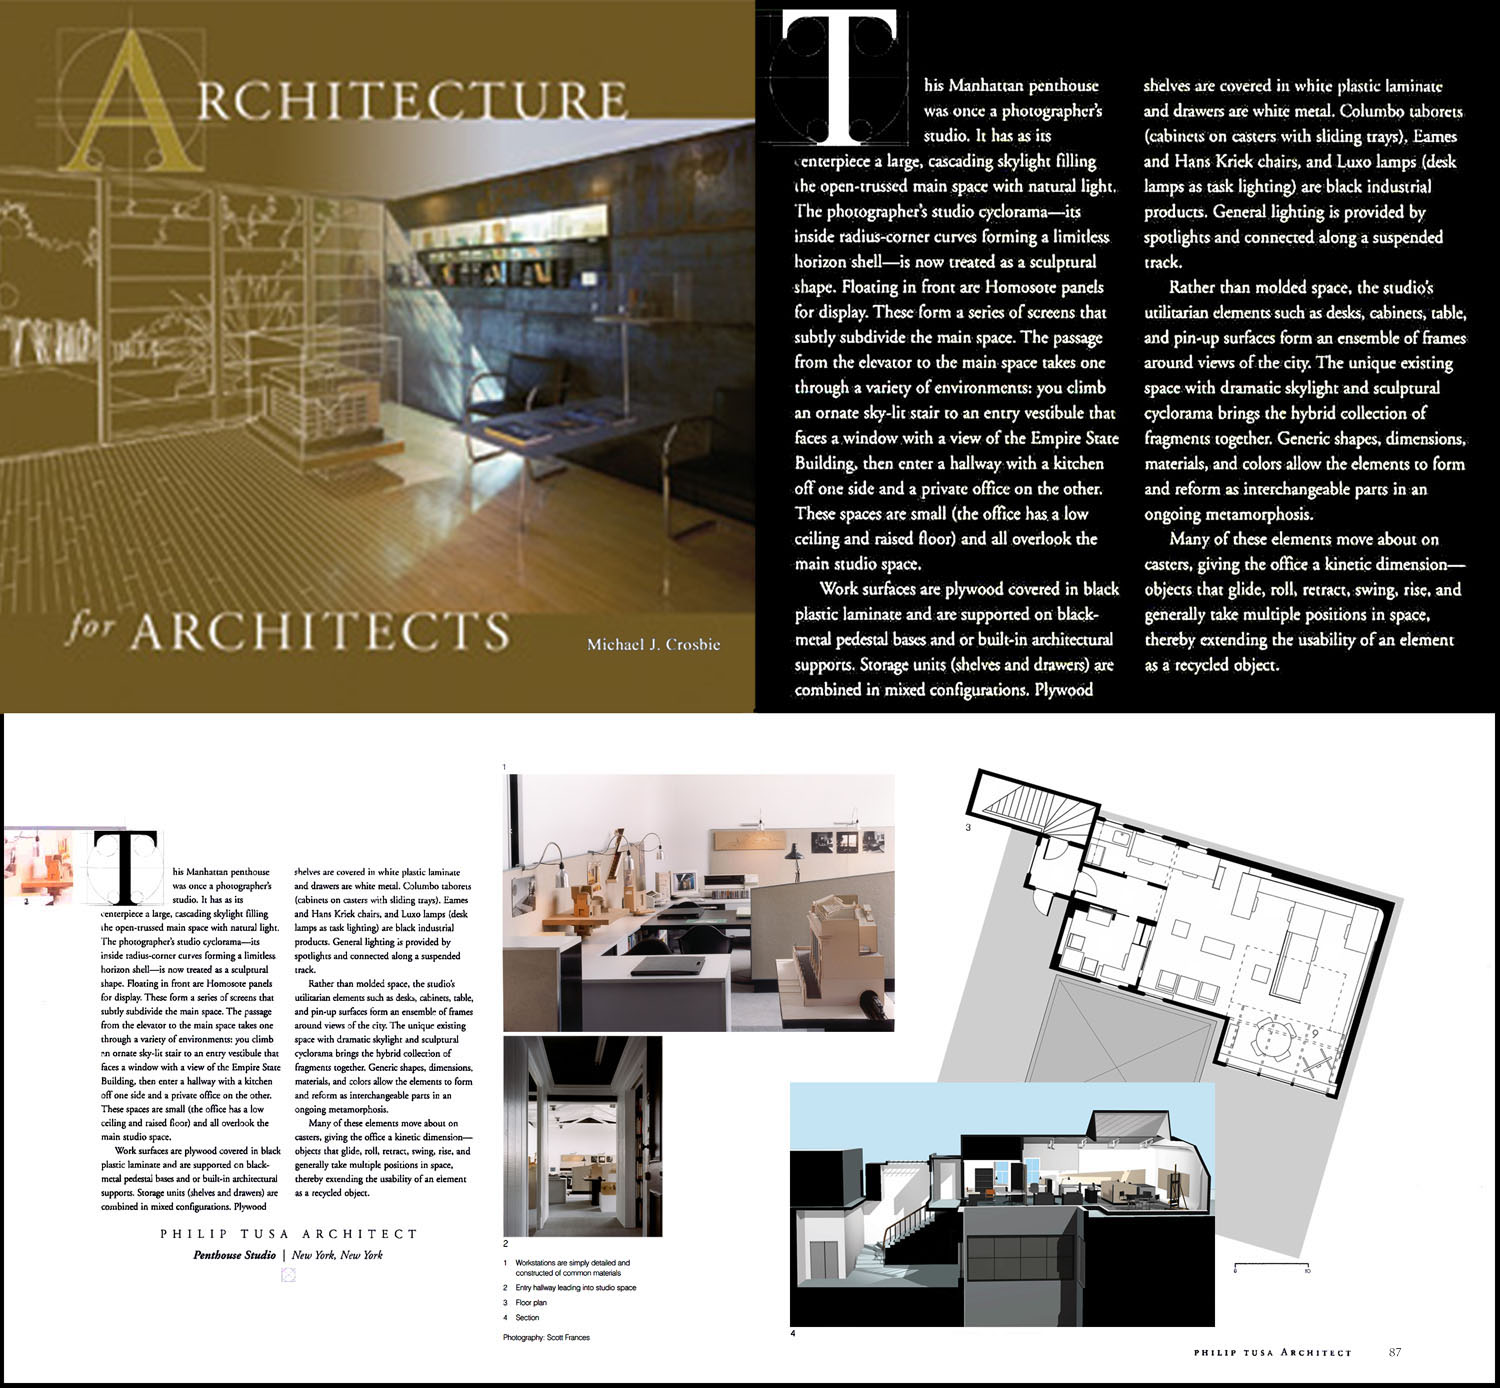 Architecture for Architects Book (2006) pg 86; 160  5th Avenue Penthouse Studio